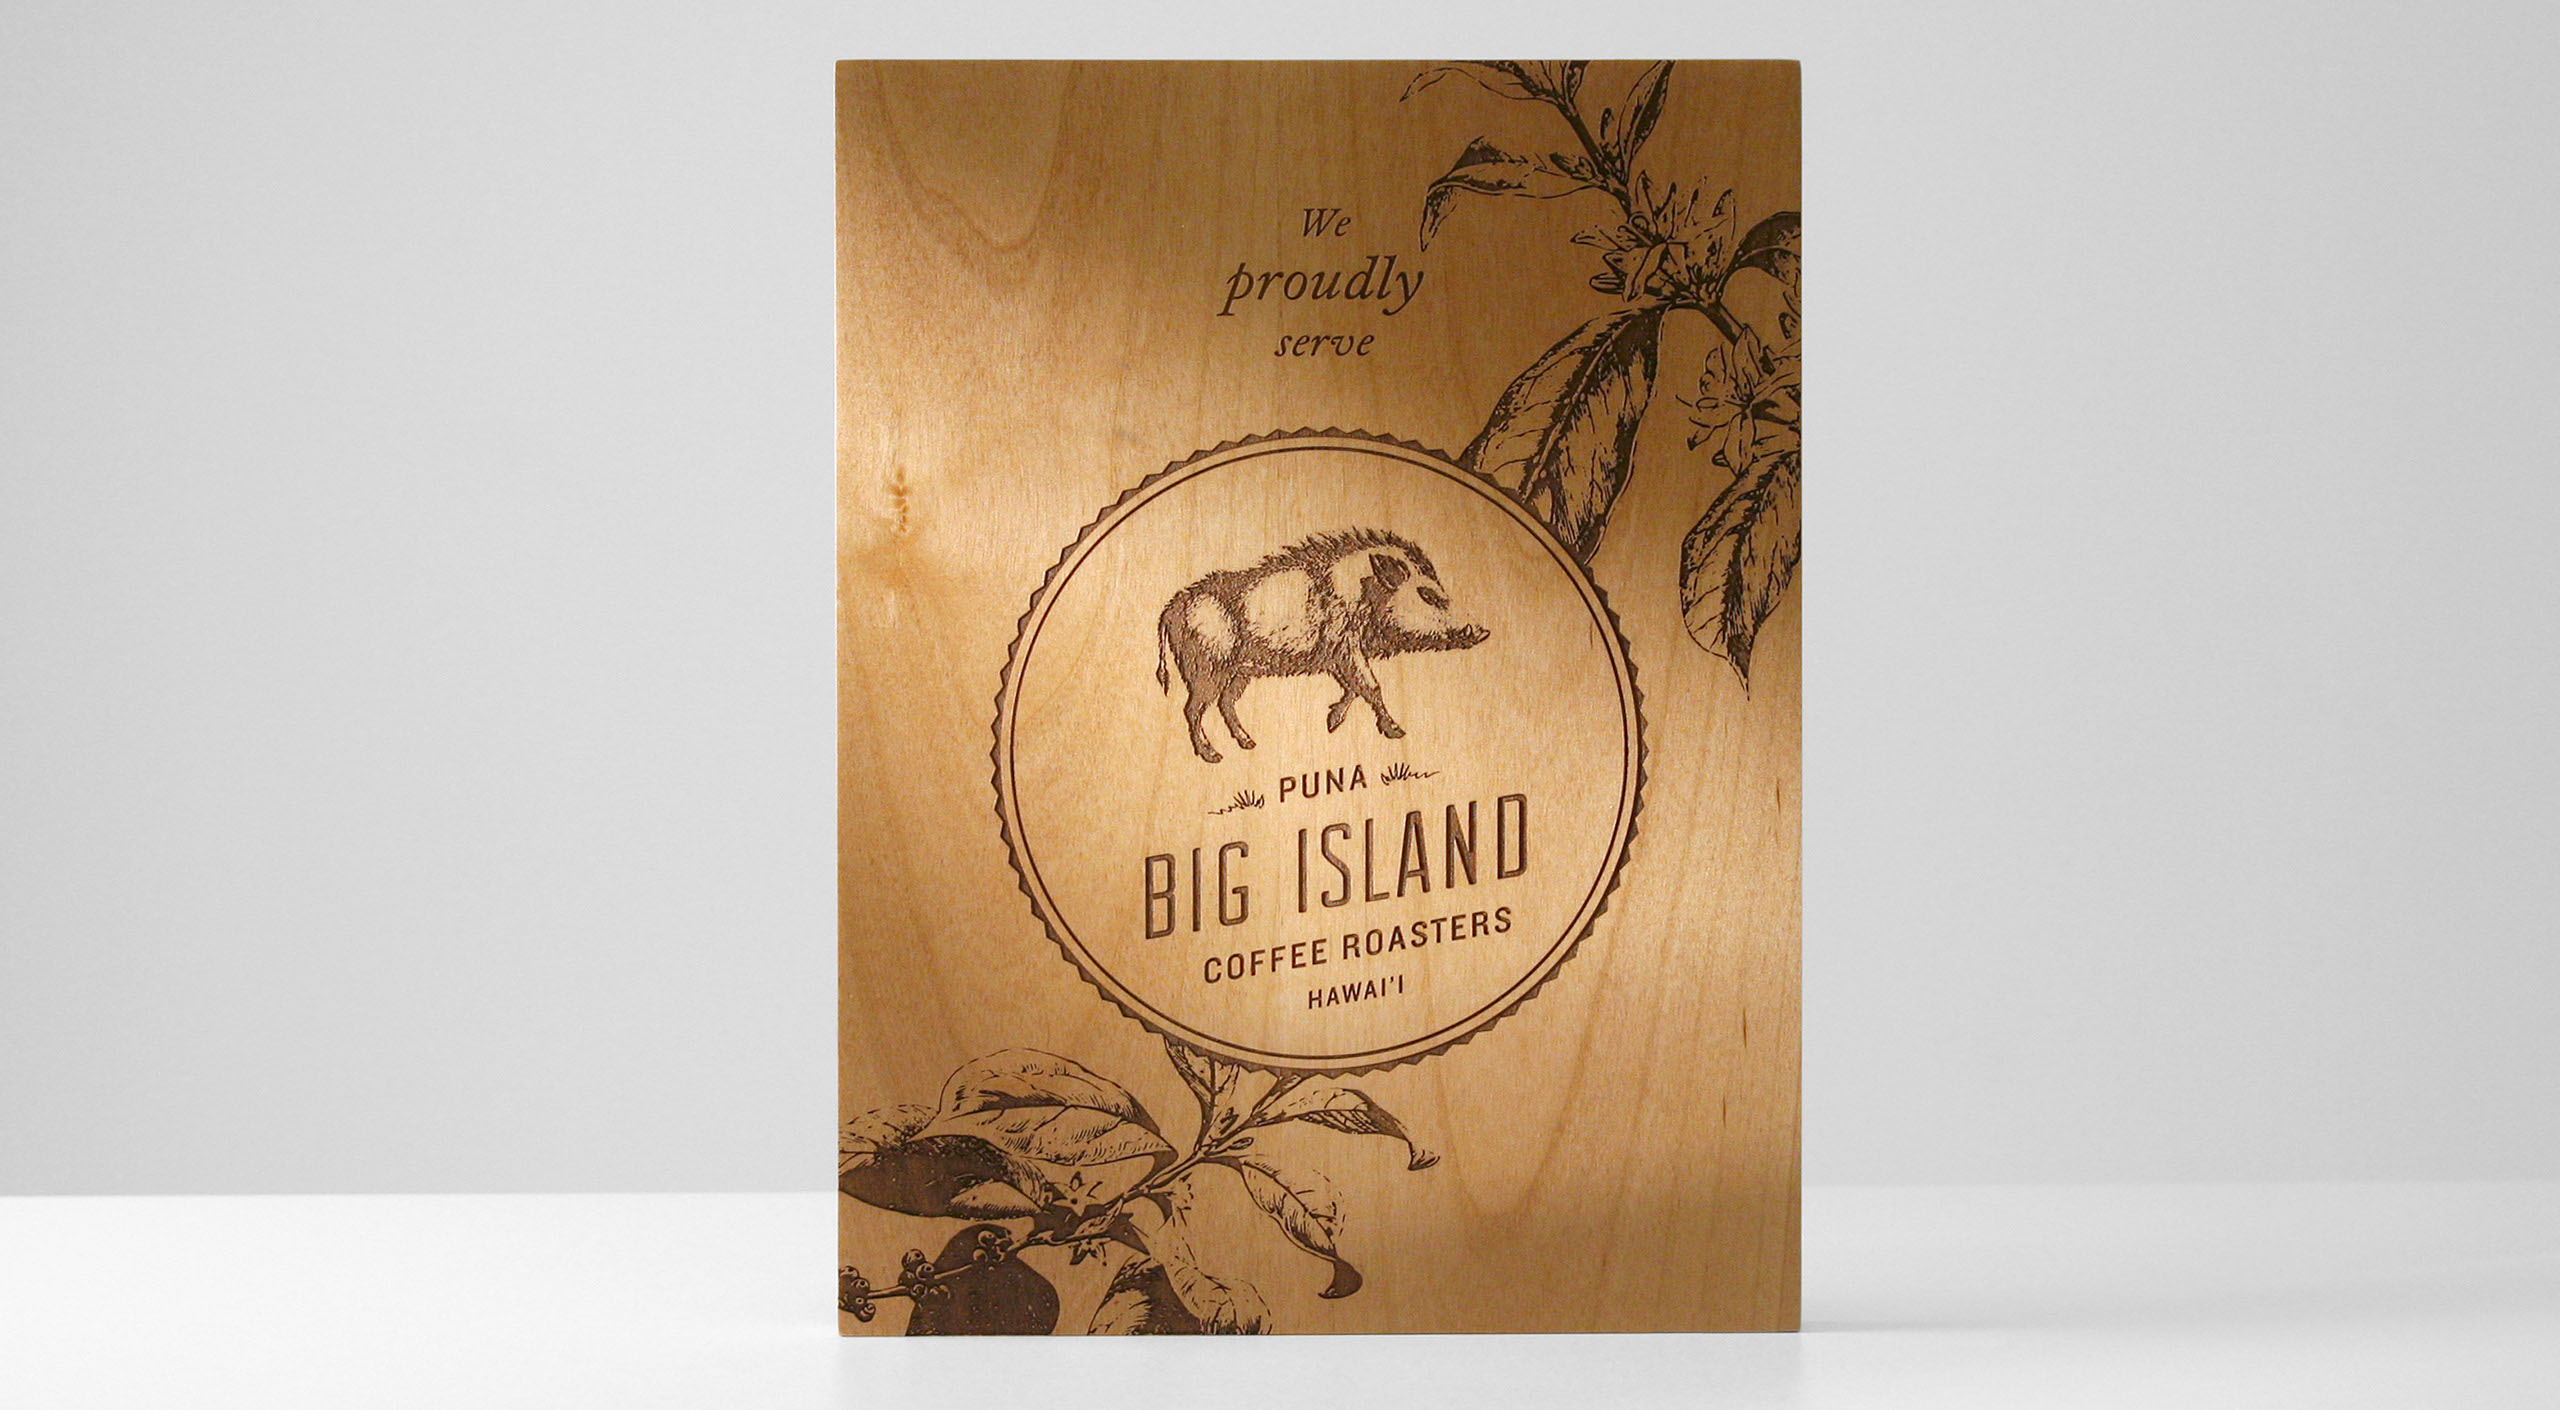 Grand Champion in Hawaii 2013 plaque